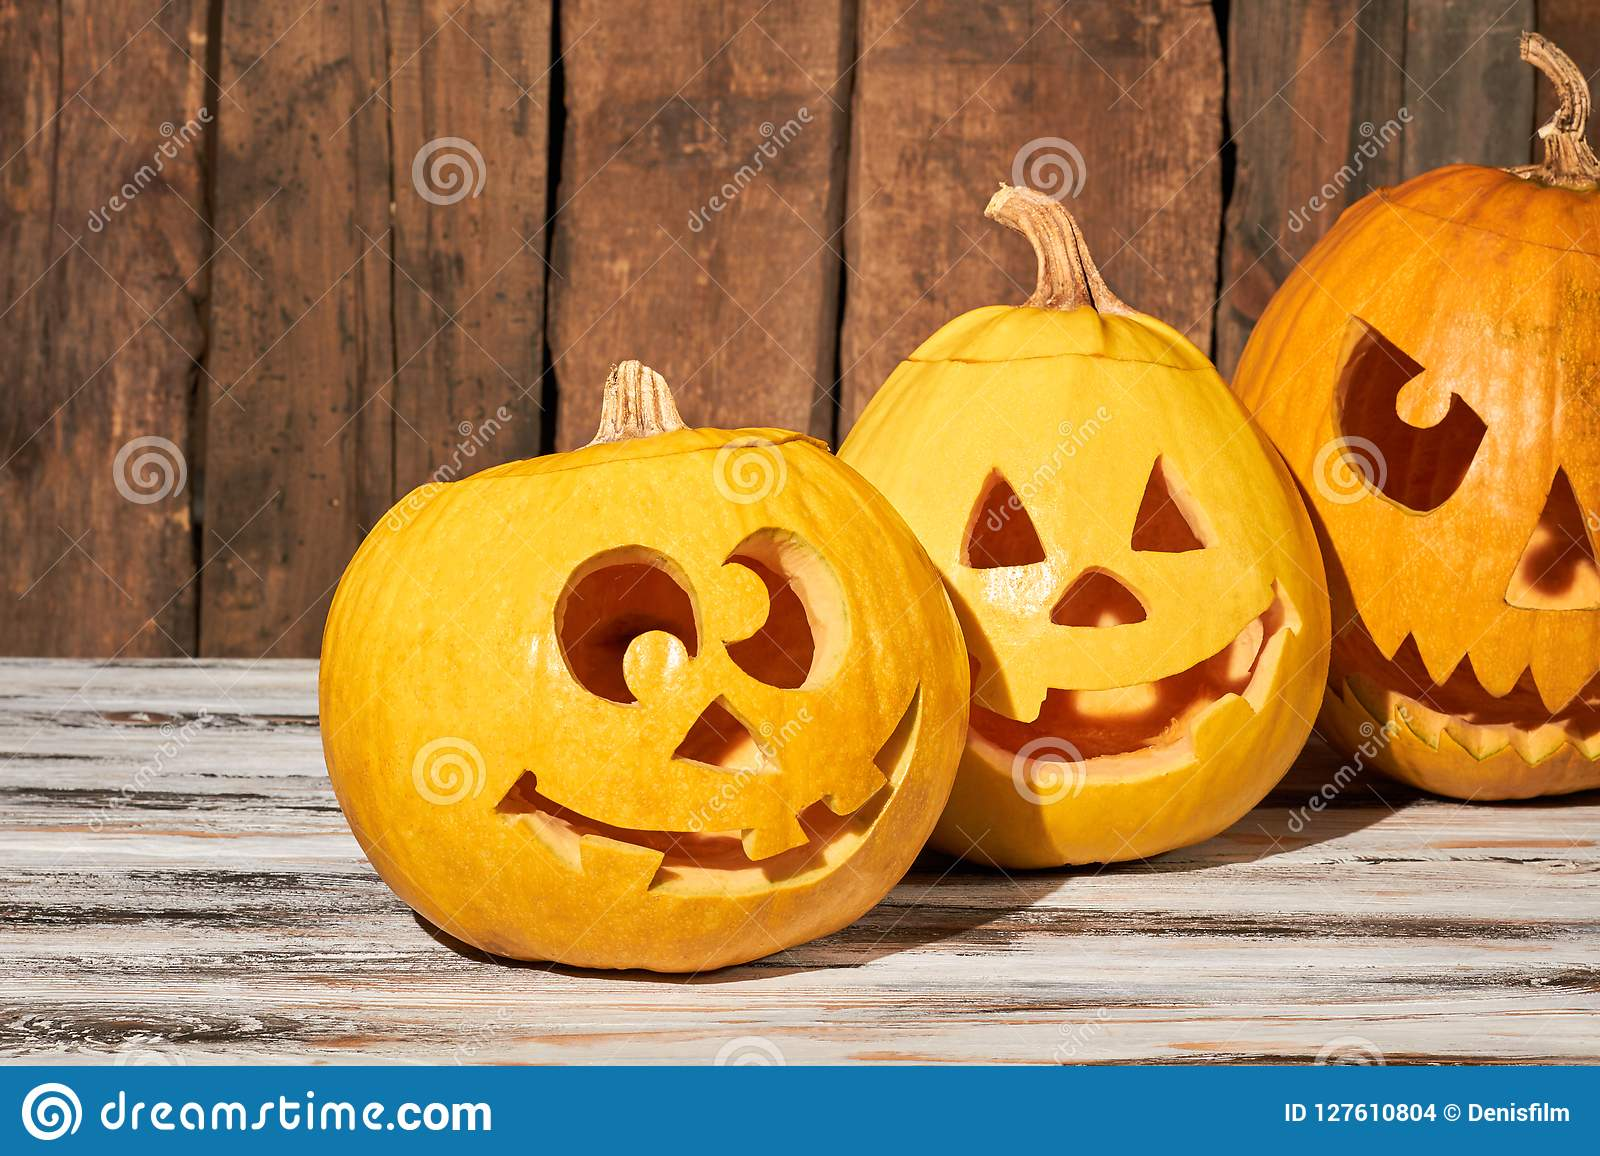 Funny Pumpkins For Halloween Holiday Stock Photo Image Of